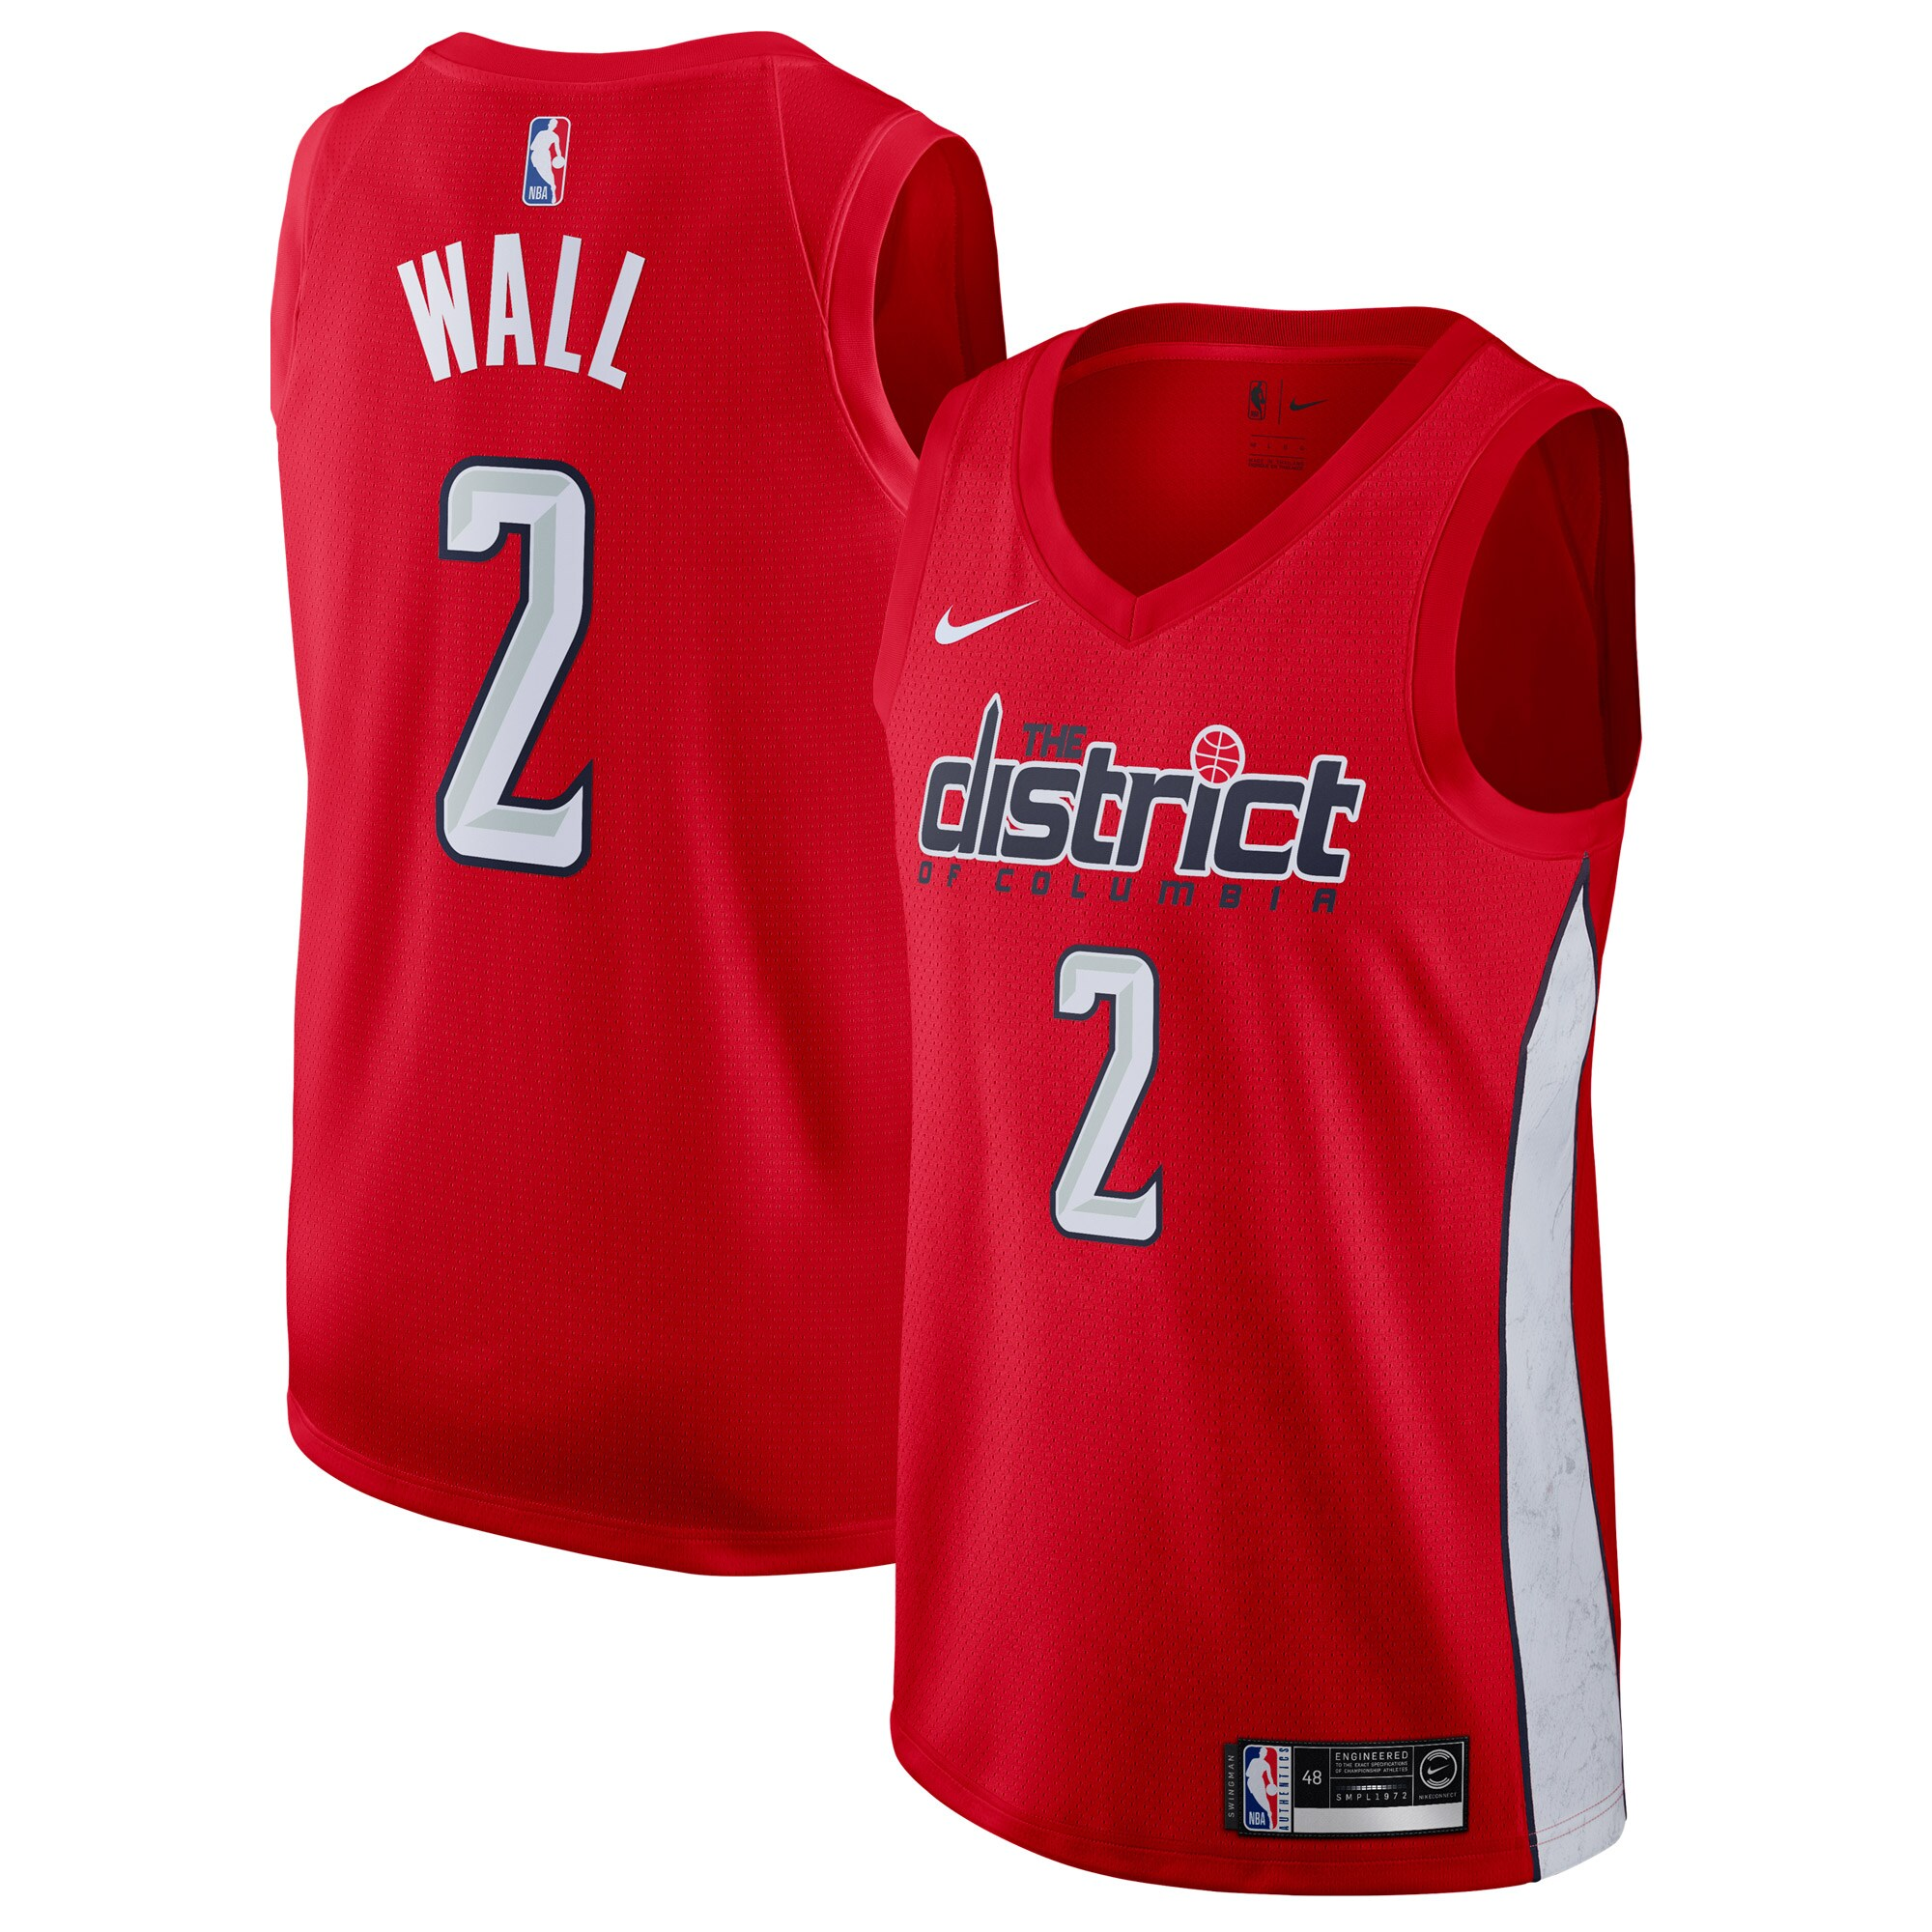 John Wall Washington Wizards Nike Youth 2018/19 Swingman Jersey Red - Earned Edition